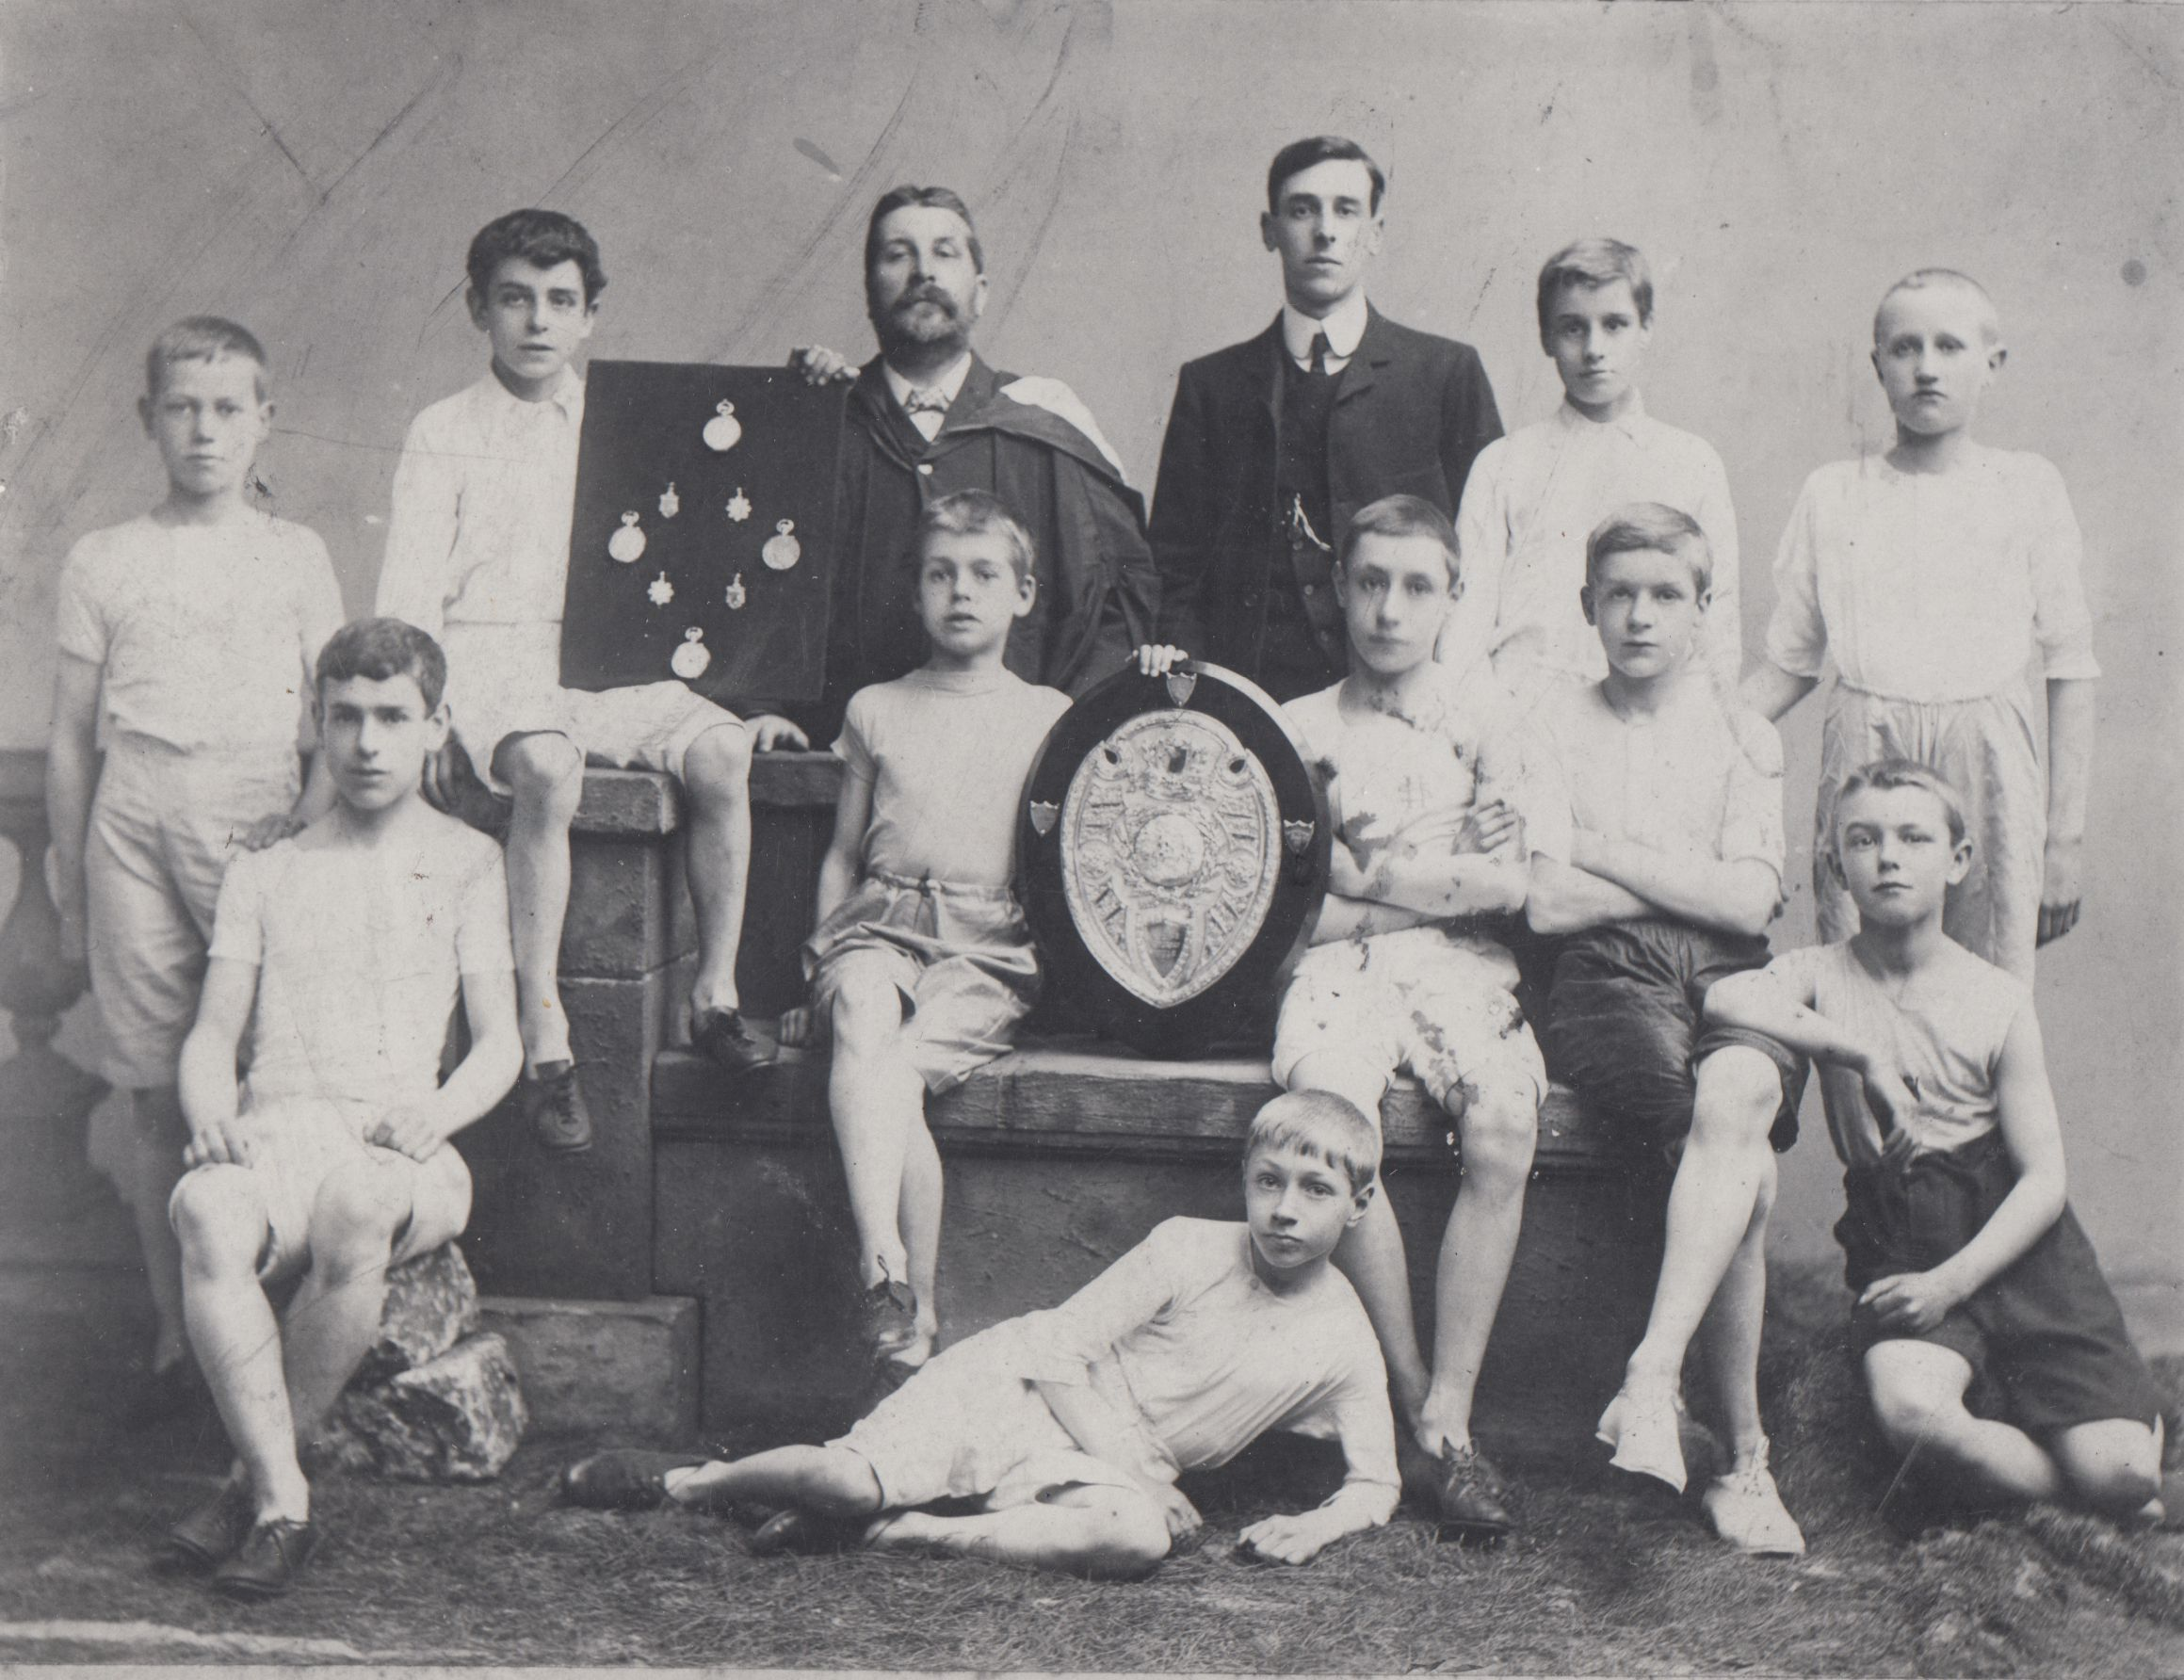 hickling_athletics_team_1900_0001.jpg